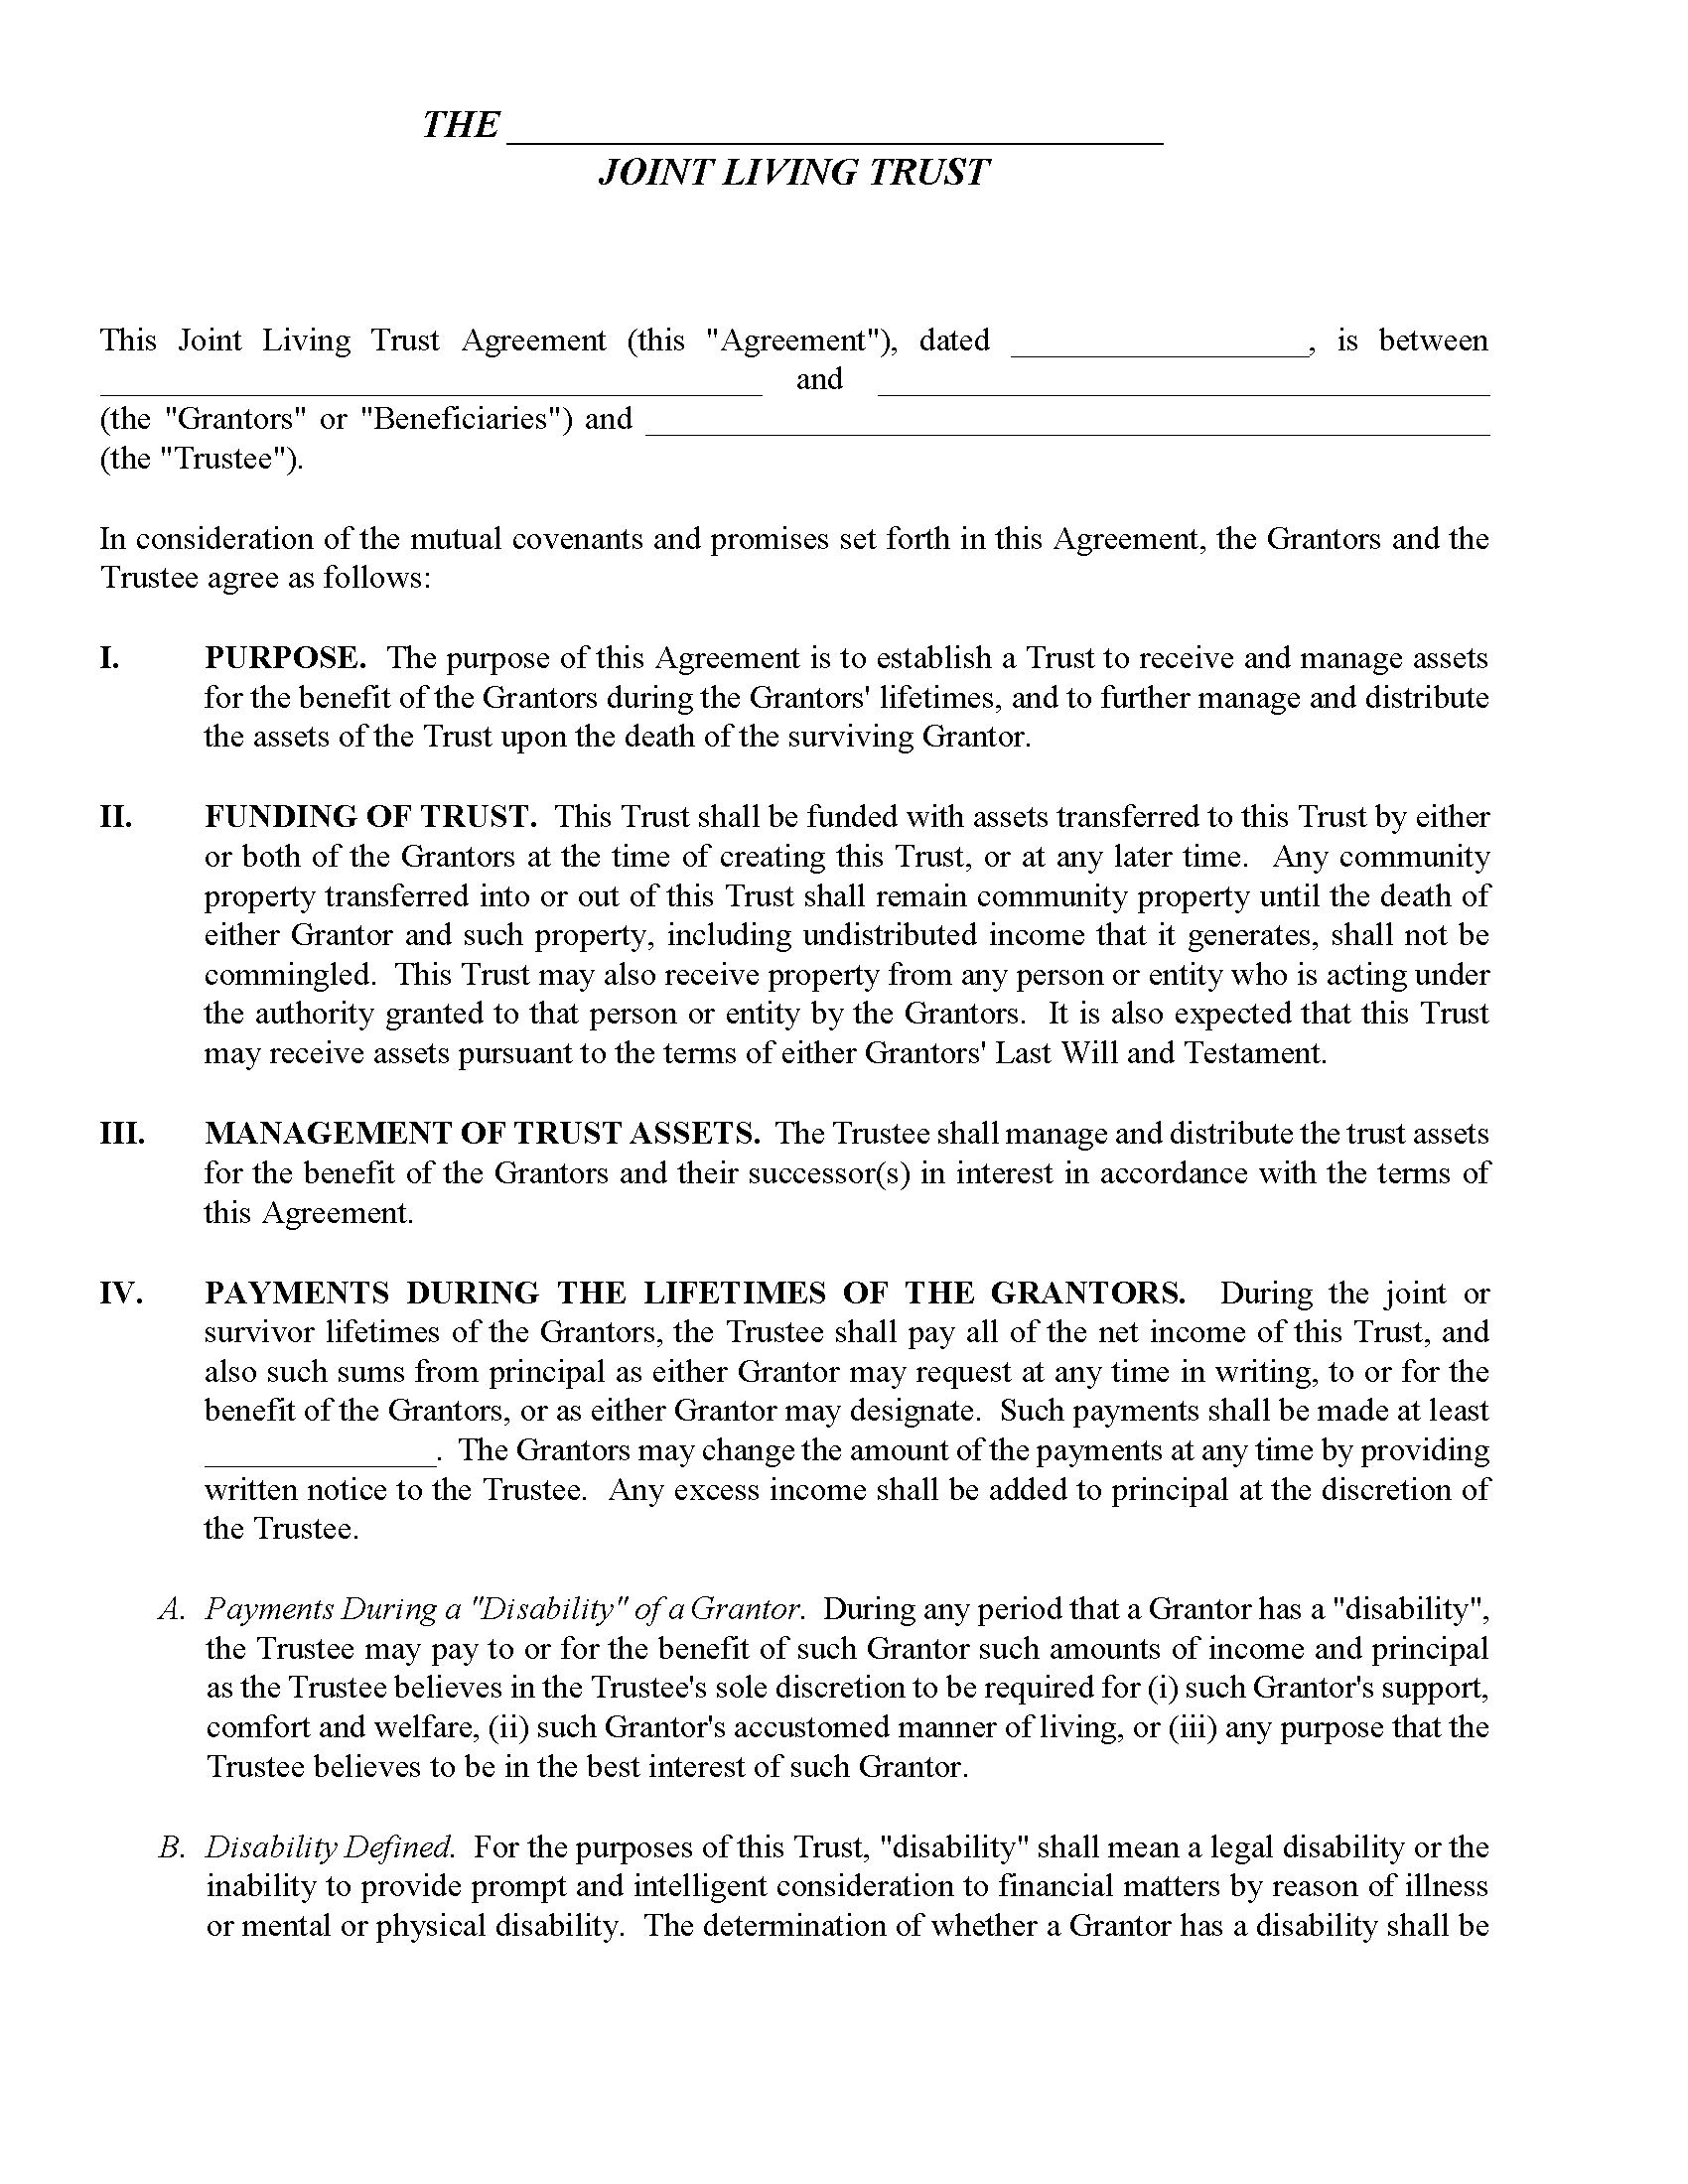 Pennsylvania Joint Living Trust Form